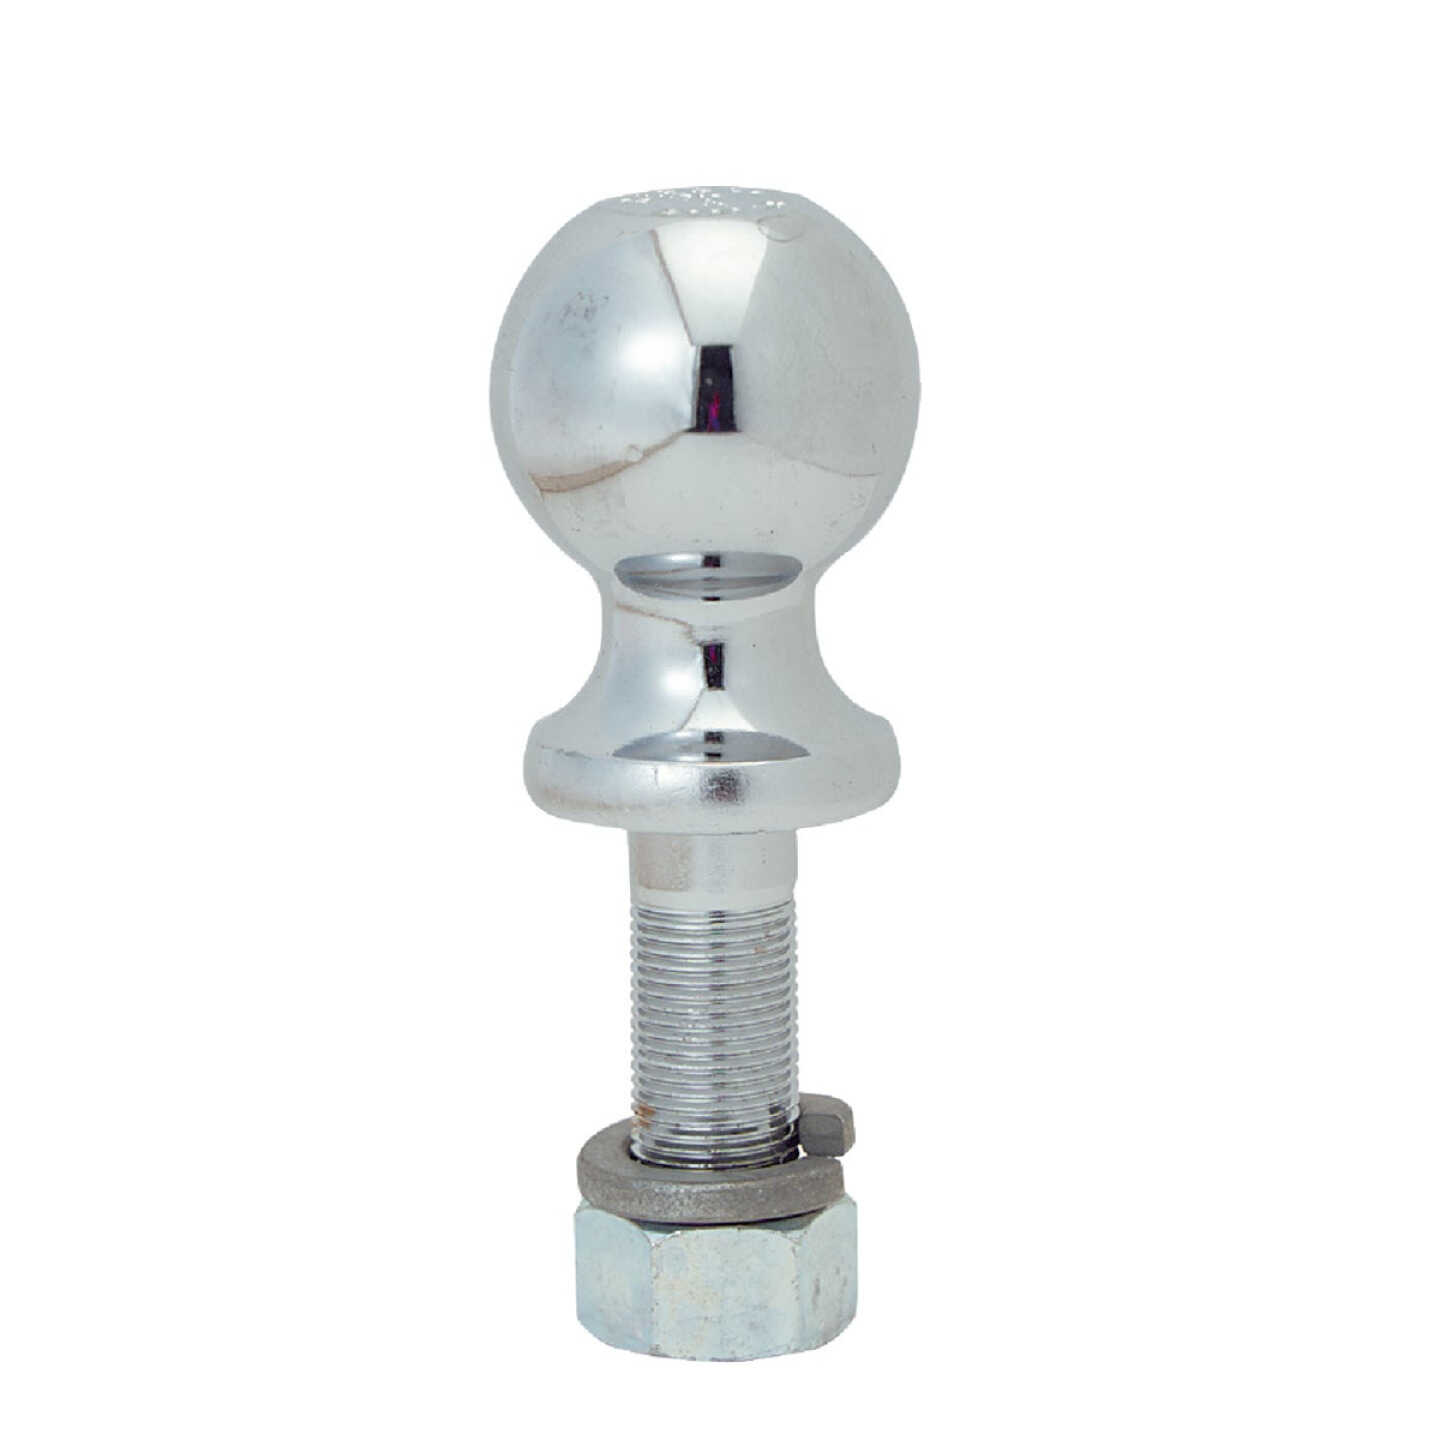 Reese Towpower 1-7/8 In. x 3/4 In. x 2-3/8 In. Hitch Ball Image 1